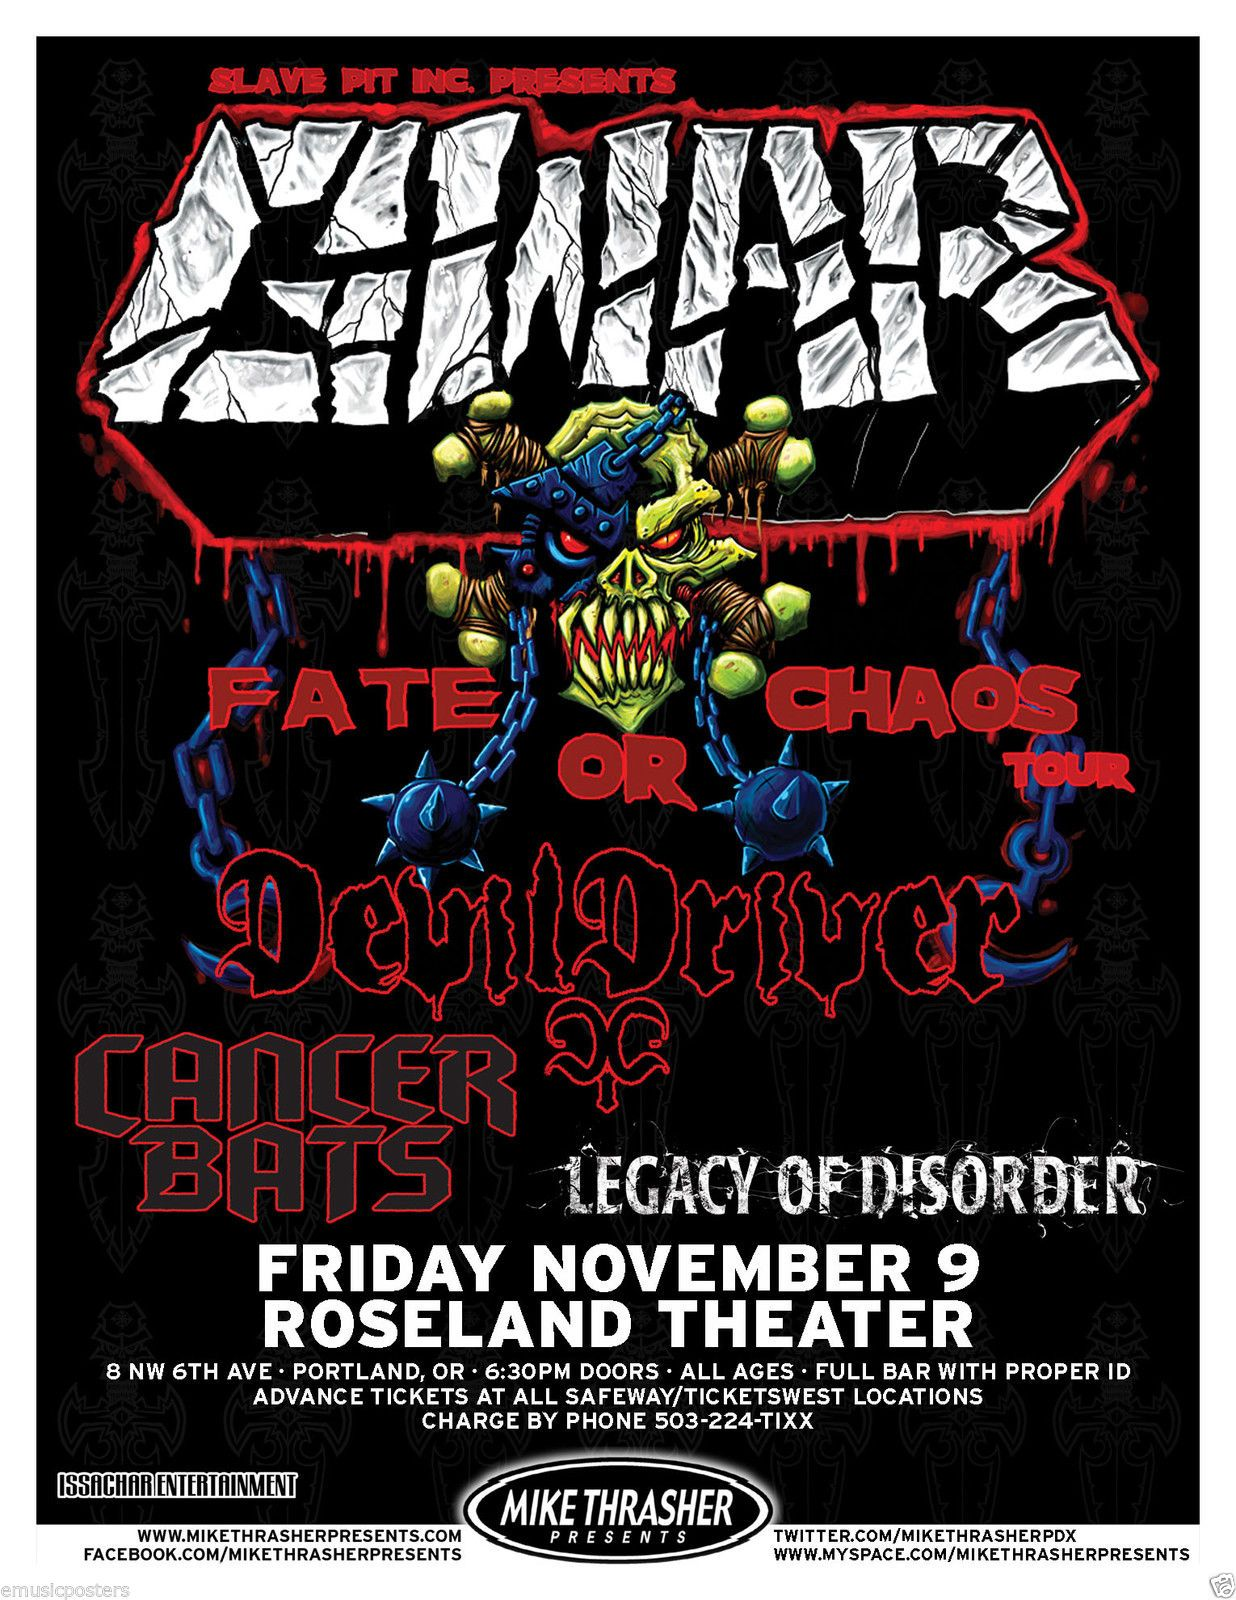 Heavy Metal Music Posters Chaos Tour 2012 Portland Concert Tour Poster Heavy Metal Music Ebay Concert Posters Music Poster Metal Music